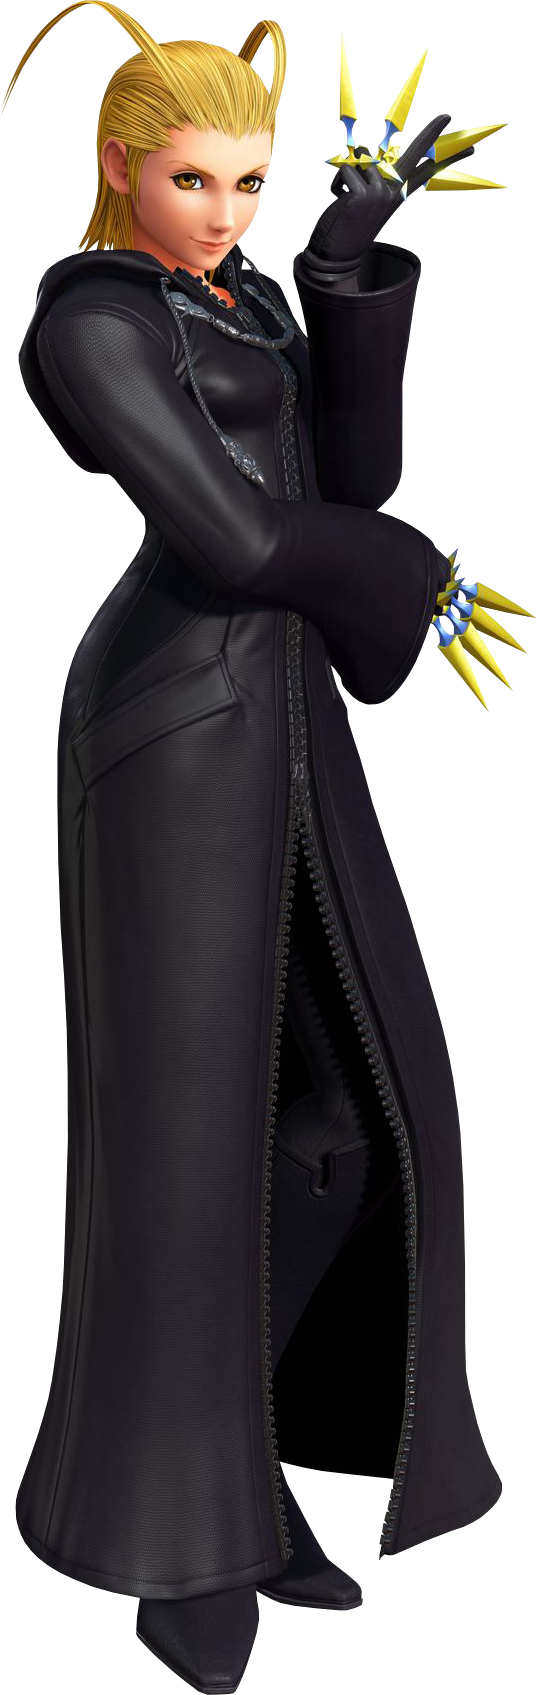 Larxene Kingdom Hearts Wiki The Kingdom Hearts Encyclopedia